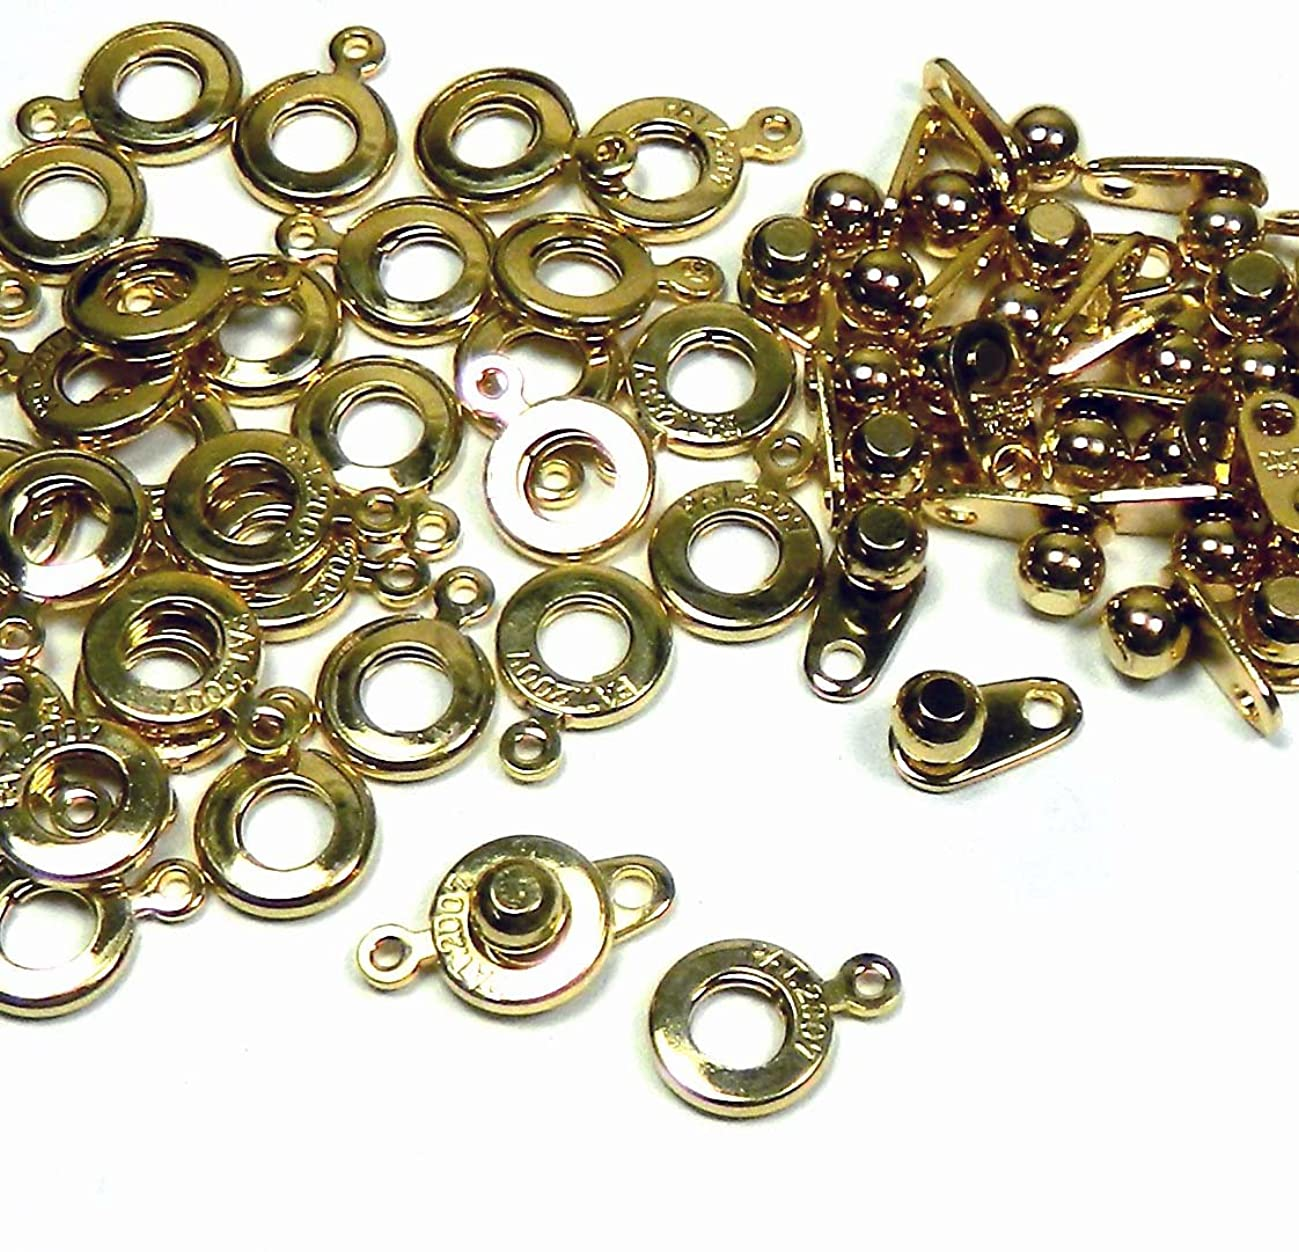 Premium Weight Ball & Socket Clasp 8mm Gold Plated 36 Clasps Jewelry Findings